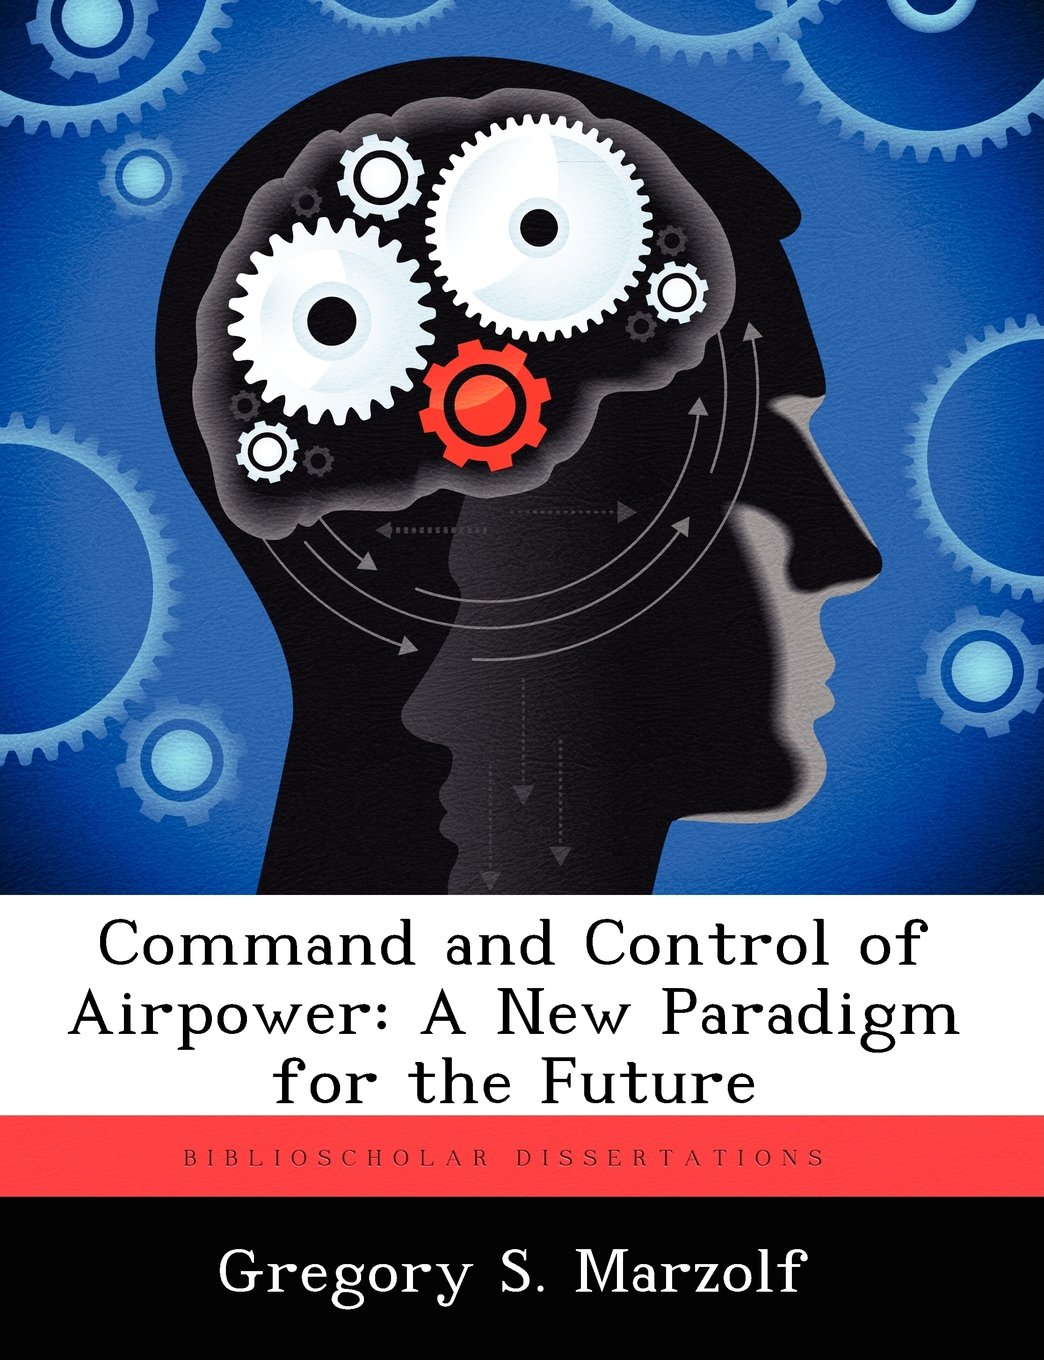 Command and Control of Airpower: A New Paradigm for the Future PDF